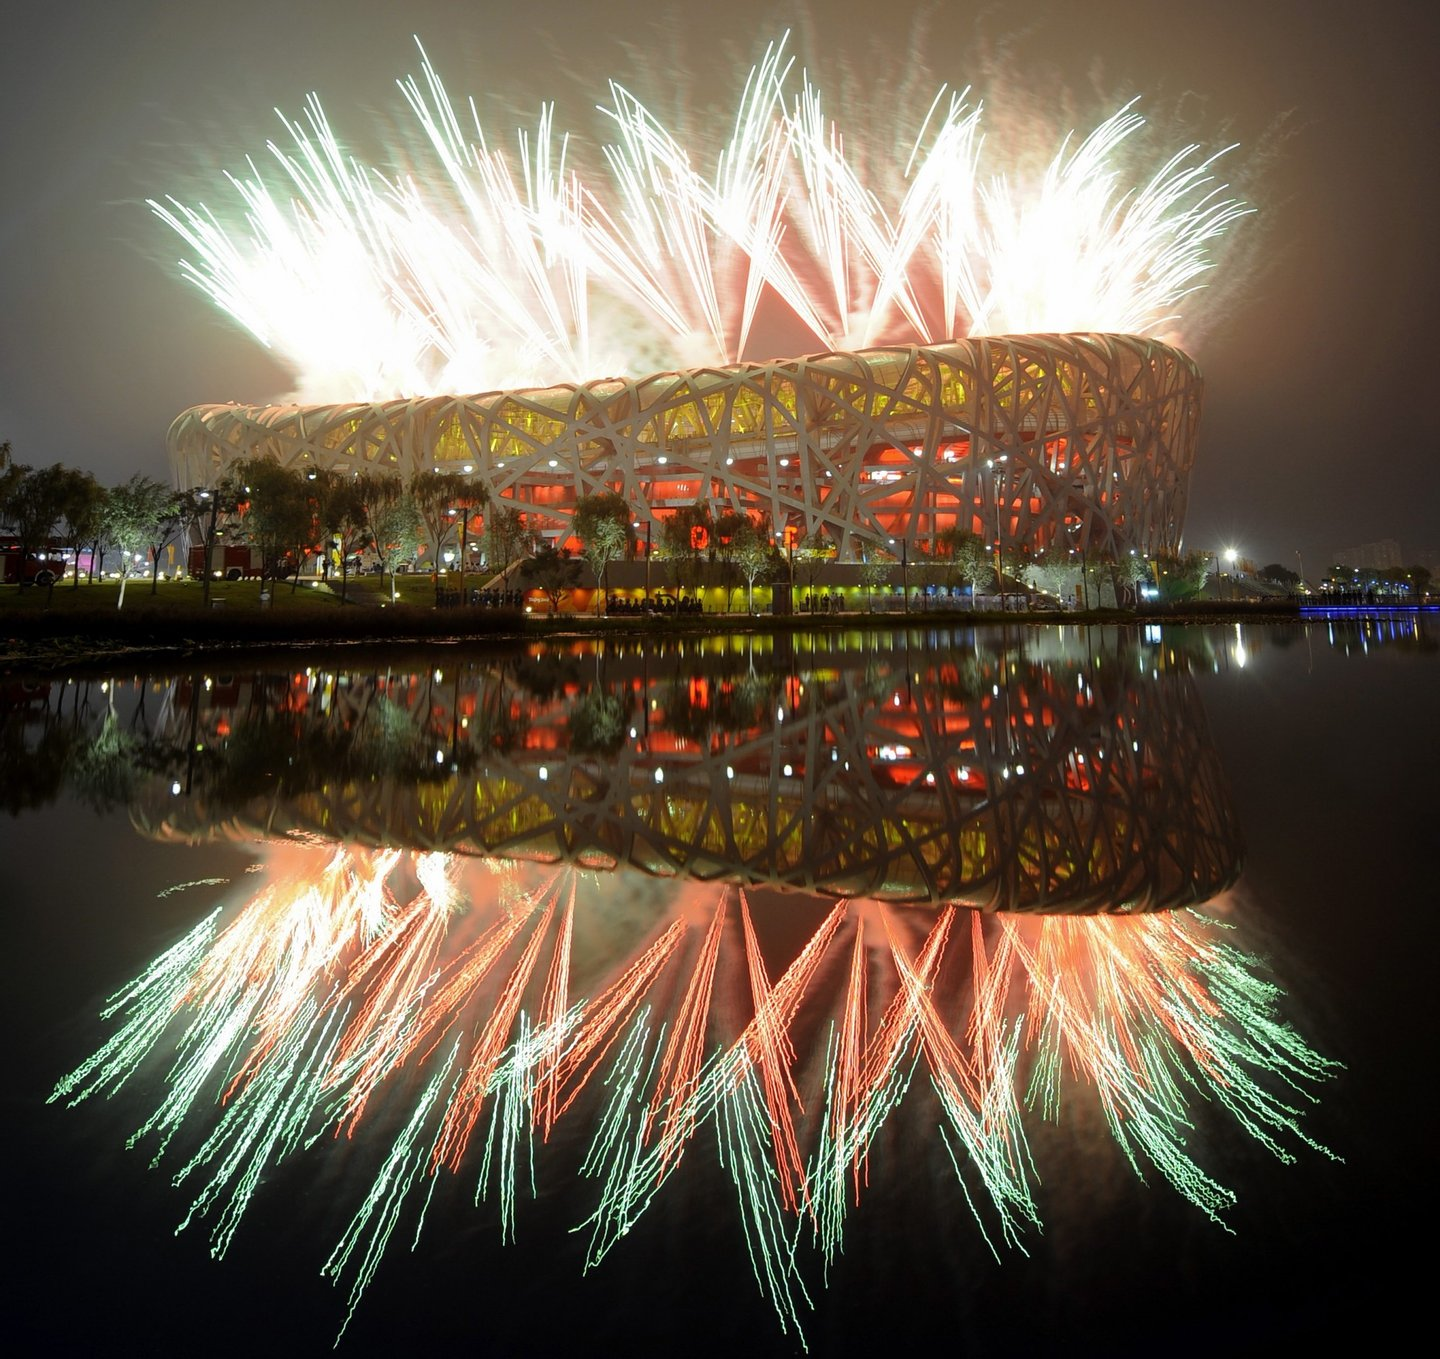 """Fireworks explode next to the National Stadium, also known as the """"Bird's Nest"""",  during the opening ceremony of the 2008 Beijing Olympic Games on August 8, 2008.  A thundering display of fireworks exploded over the """"Bird's Nest"""" stadium in the shape of a blossoming red flower as China put the full glory of its rich history on display at the Olympic opening ceremony. Some 91,000 people, many waving Chinese flags, packed into the National Stadium on a hot and humid night for a spectacular show masterminded by Oscar-nominated filmmaker Zhang Yimou.       AFP PHOTO / FRANCK FIFE (Photo credit should read FRANCK FIFE/AFP/Getty Images)"""